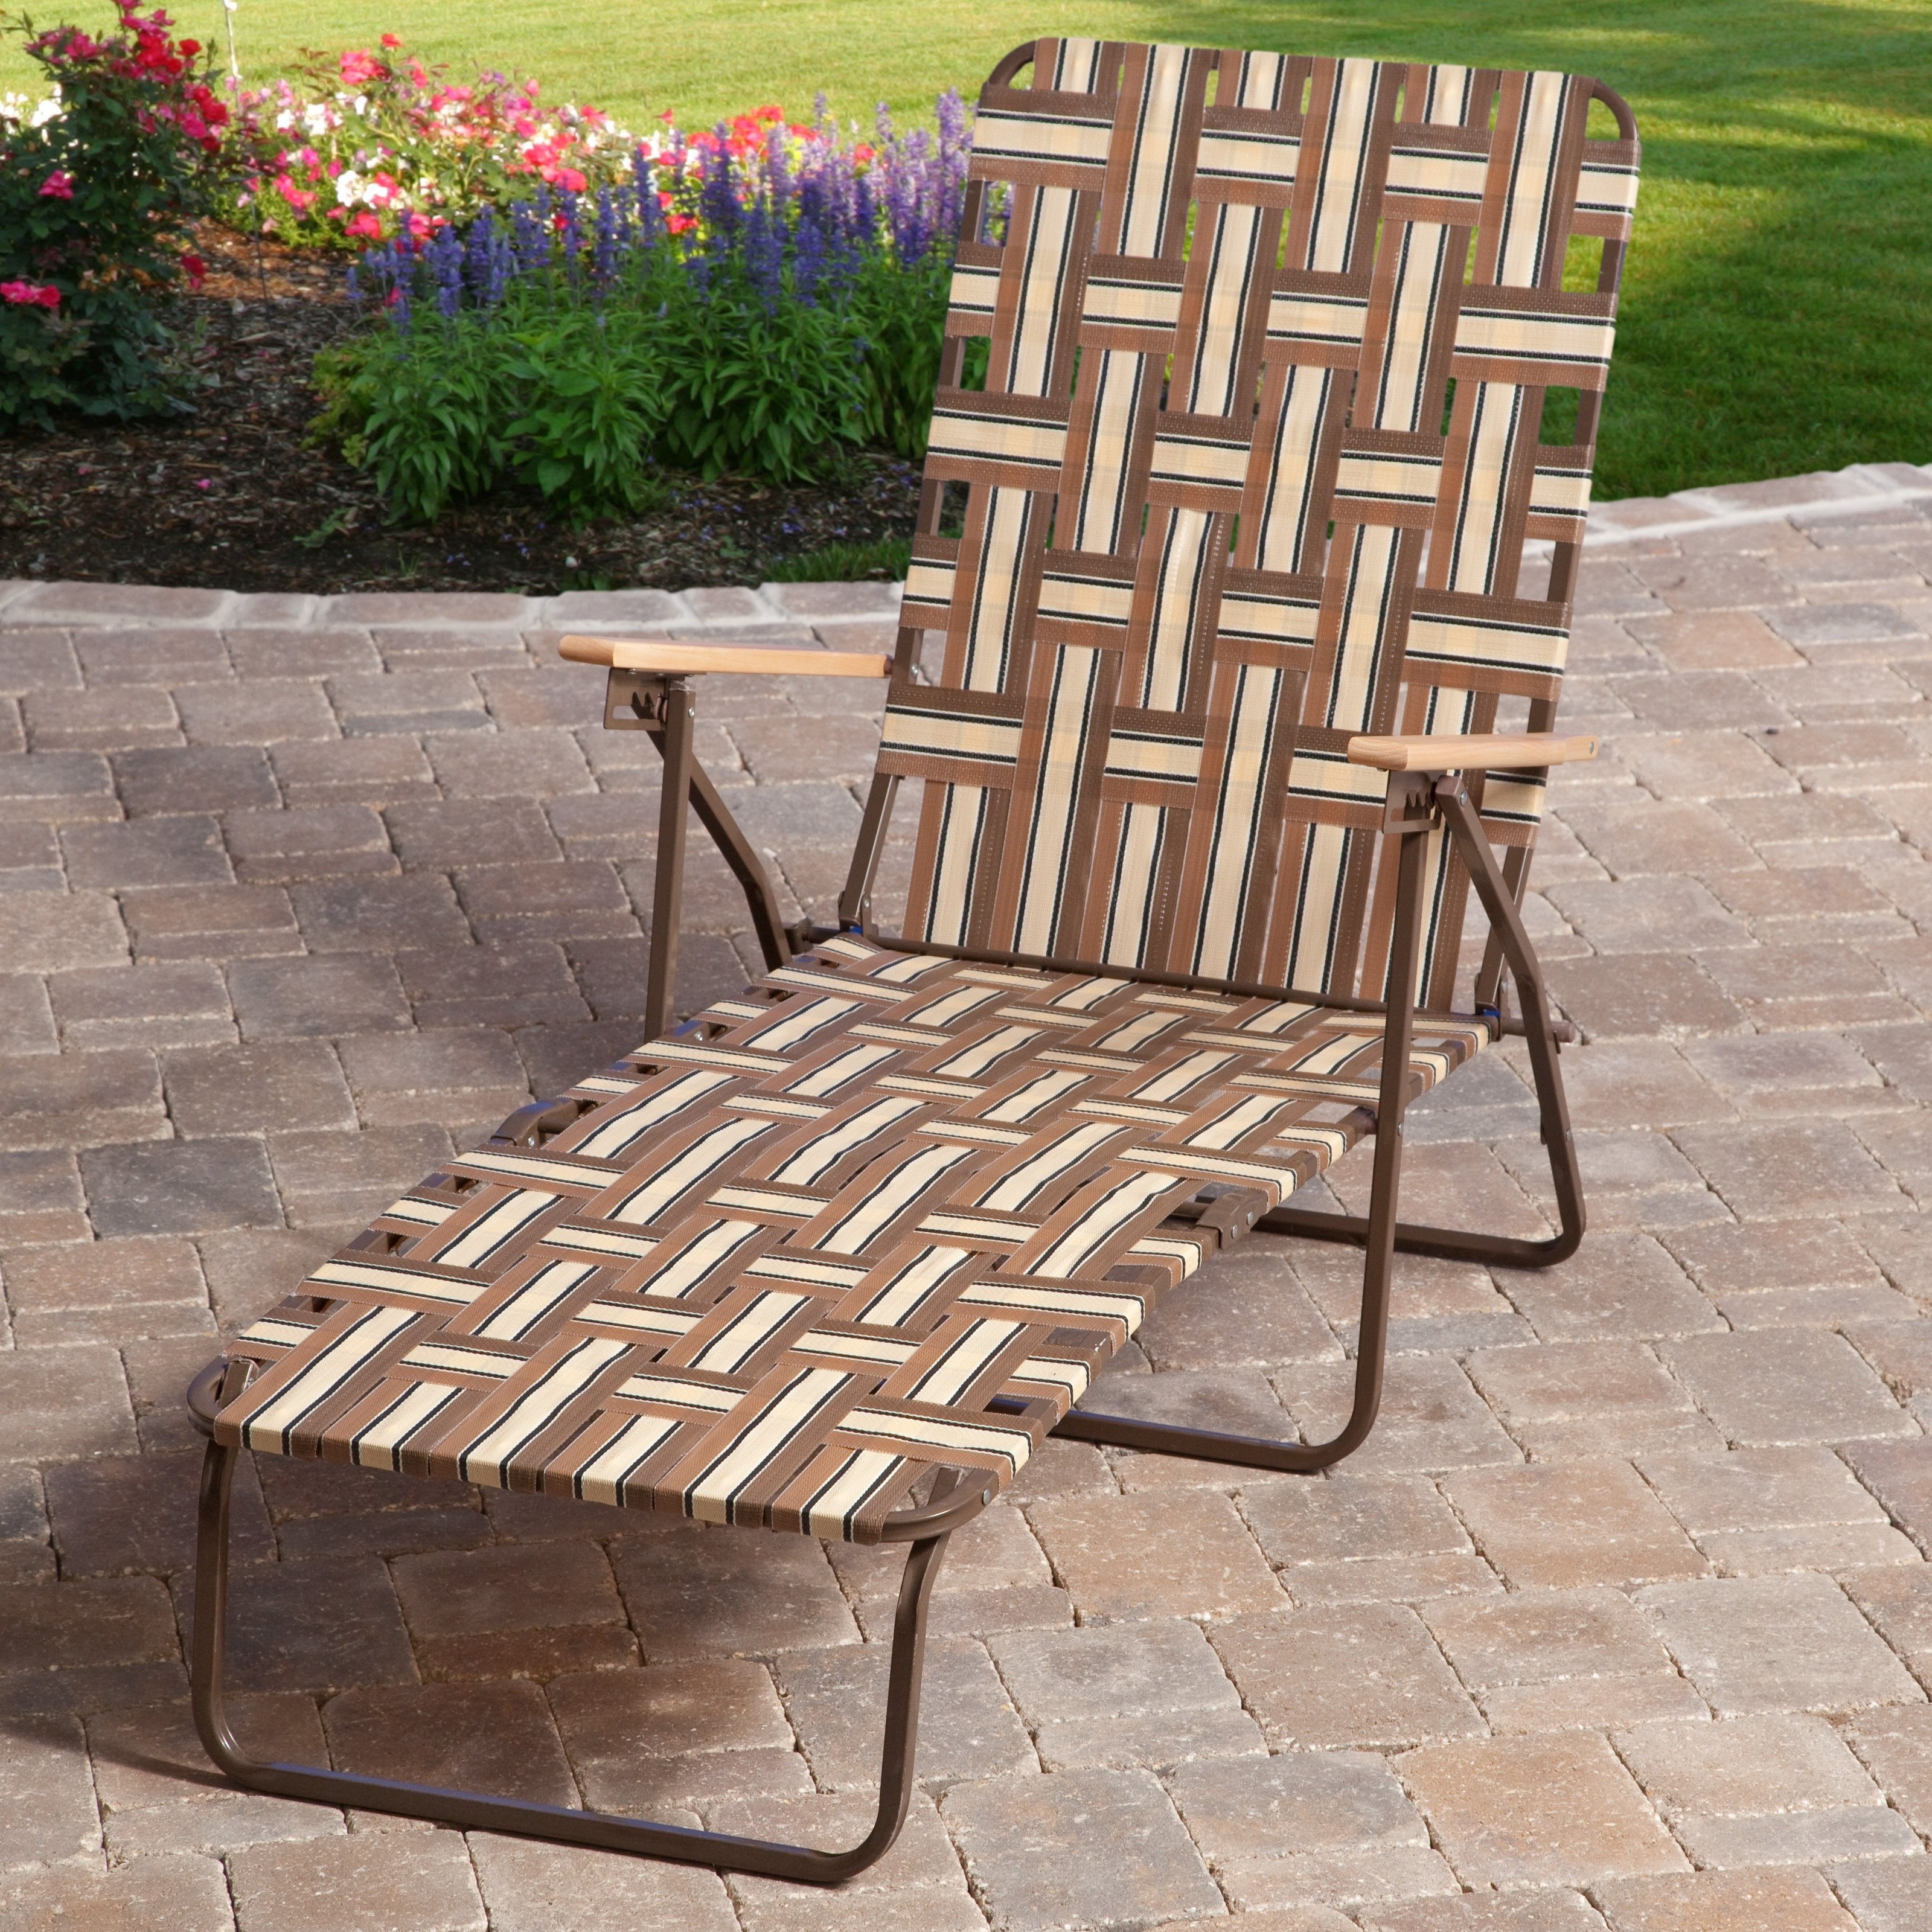 Outdoor Chaise Lounge Chairs At Walmart In Widely Used Rio Deluxe Folding Web Chaise Lounge – Walmart (View 12 of 15)